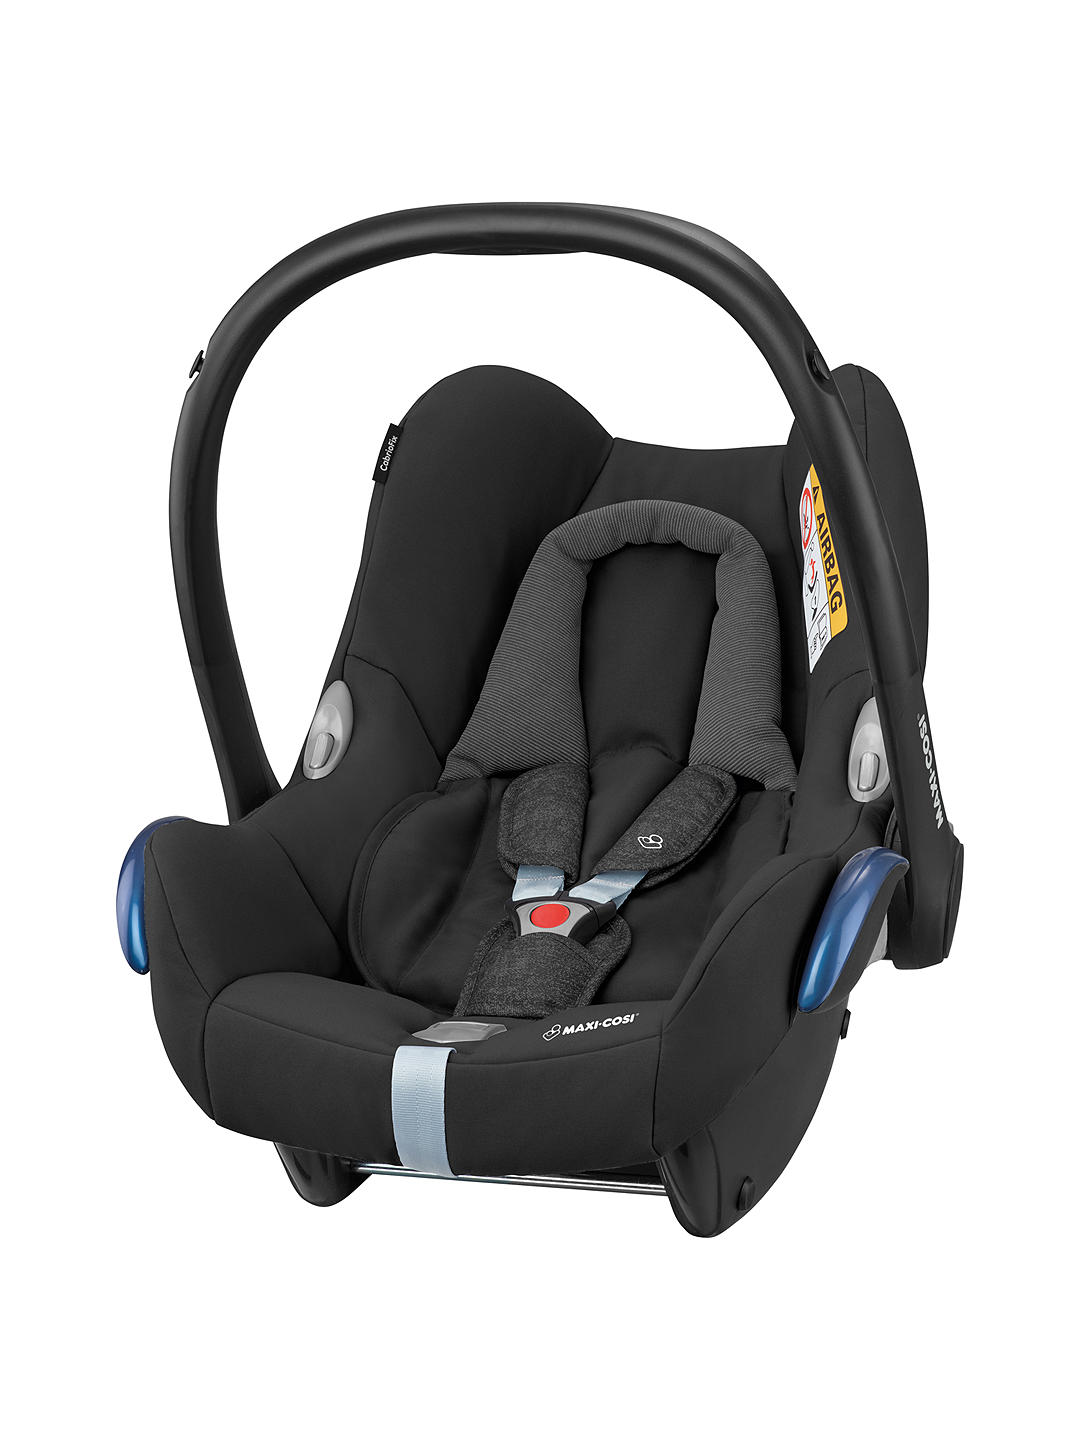 Maxi Cosi Car Seat Cabriofix Manual John Lewis Voucher Code – Save £135 When Buying Selected